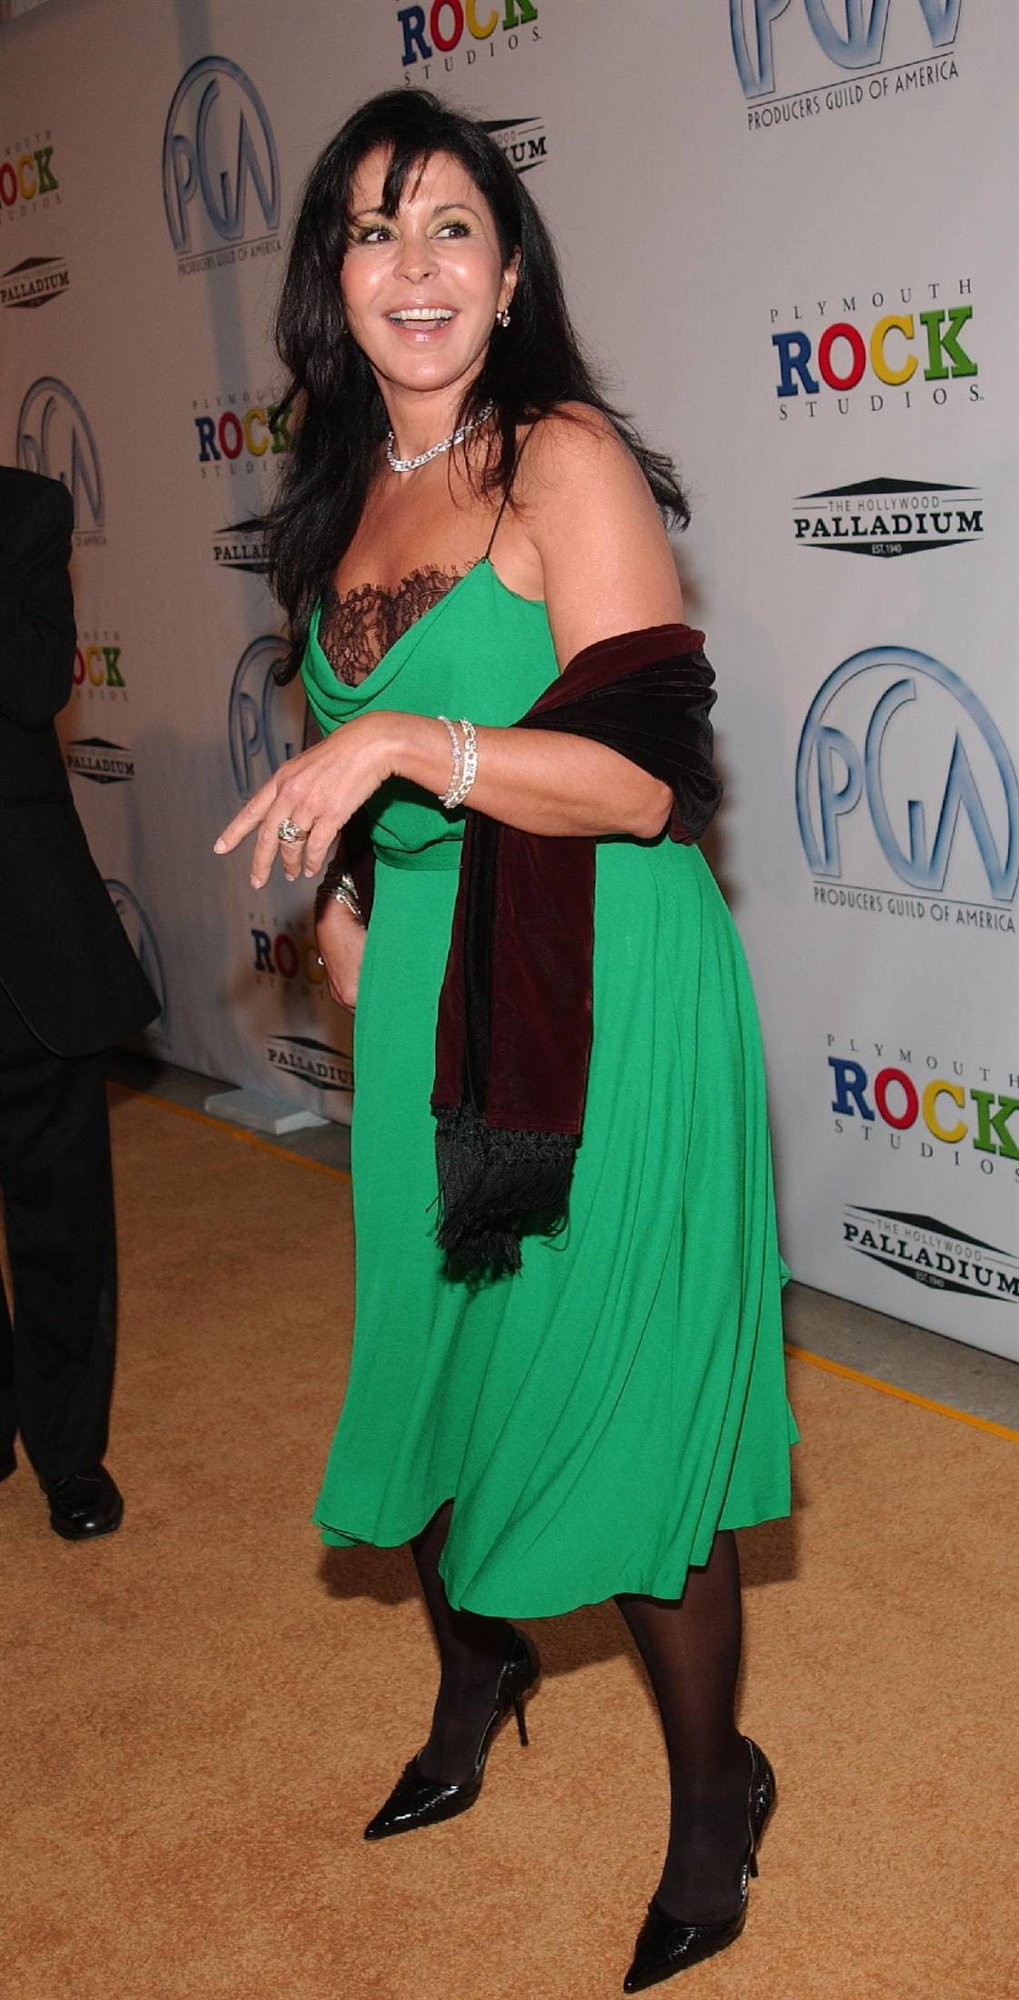 Maria Conchita Alonso leaked wallpapers